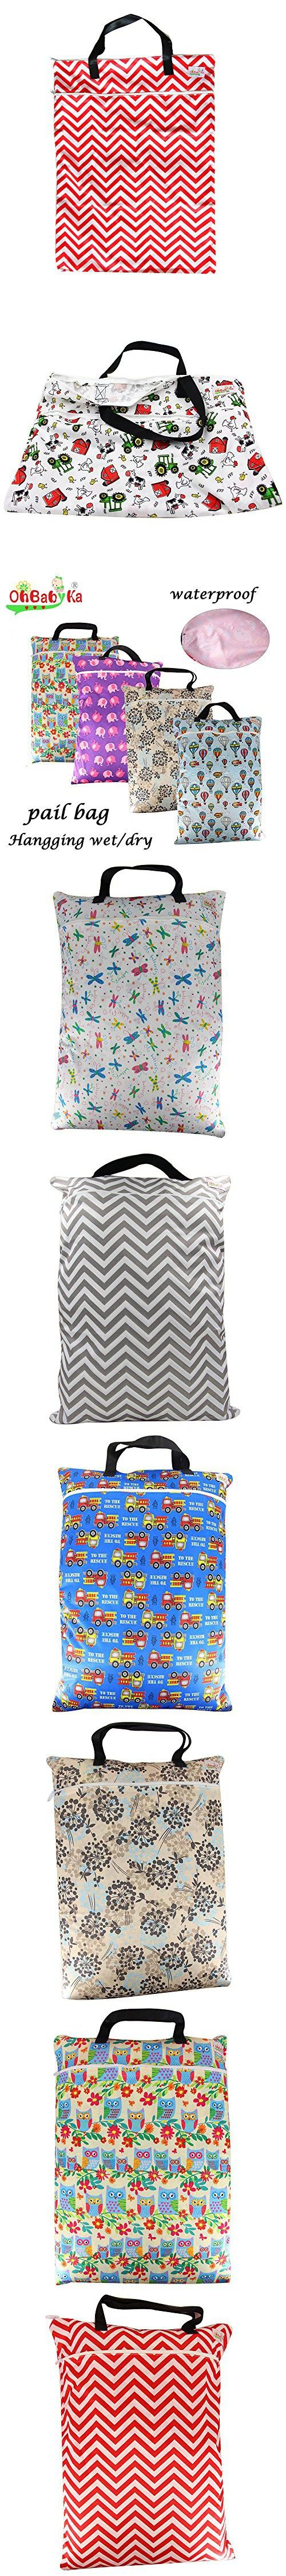 Large Wet Dry Hanging Stroller Pockets Pail Bag for Baby Cloth Diaper Nappy Bag - OHBABYKA (one size, Red Chevron)